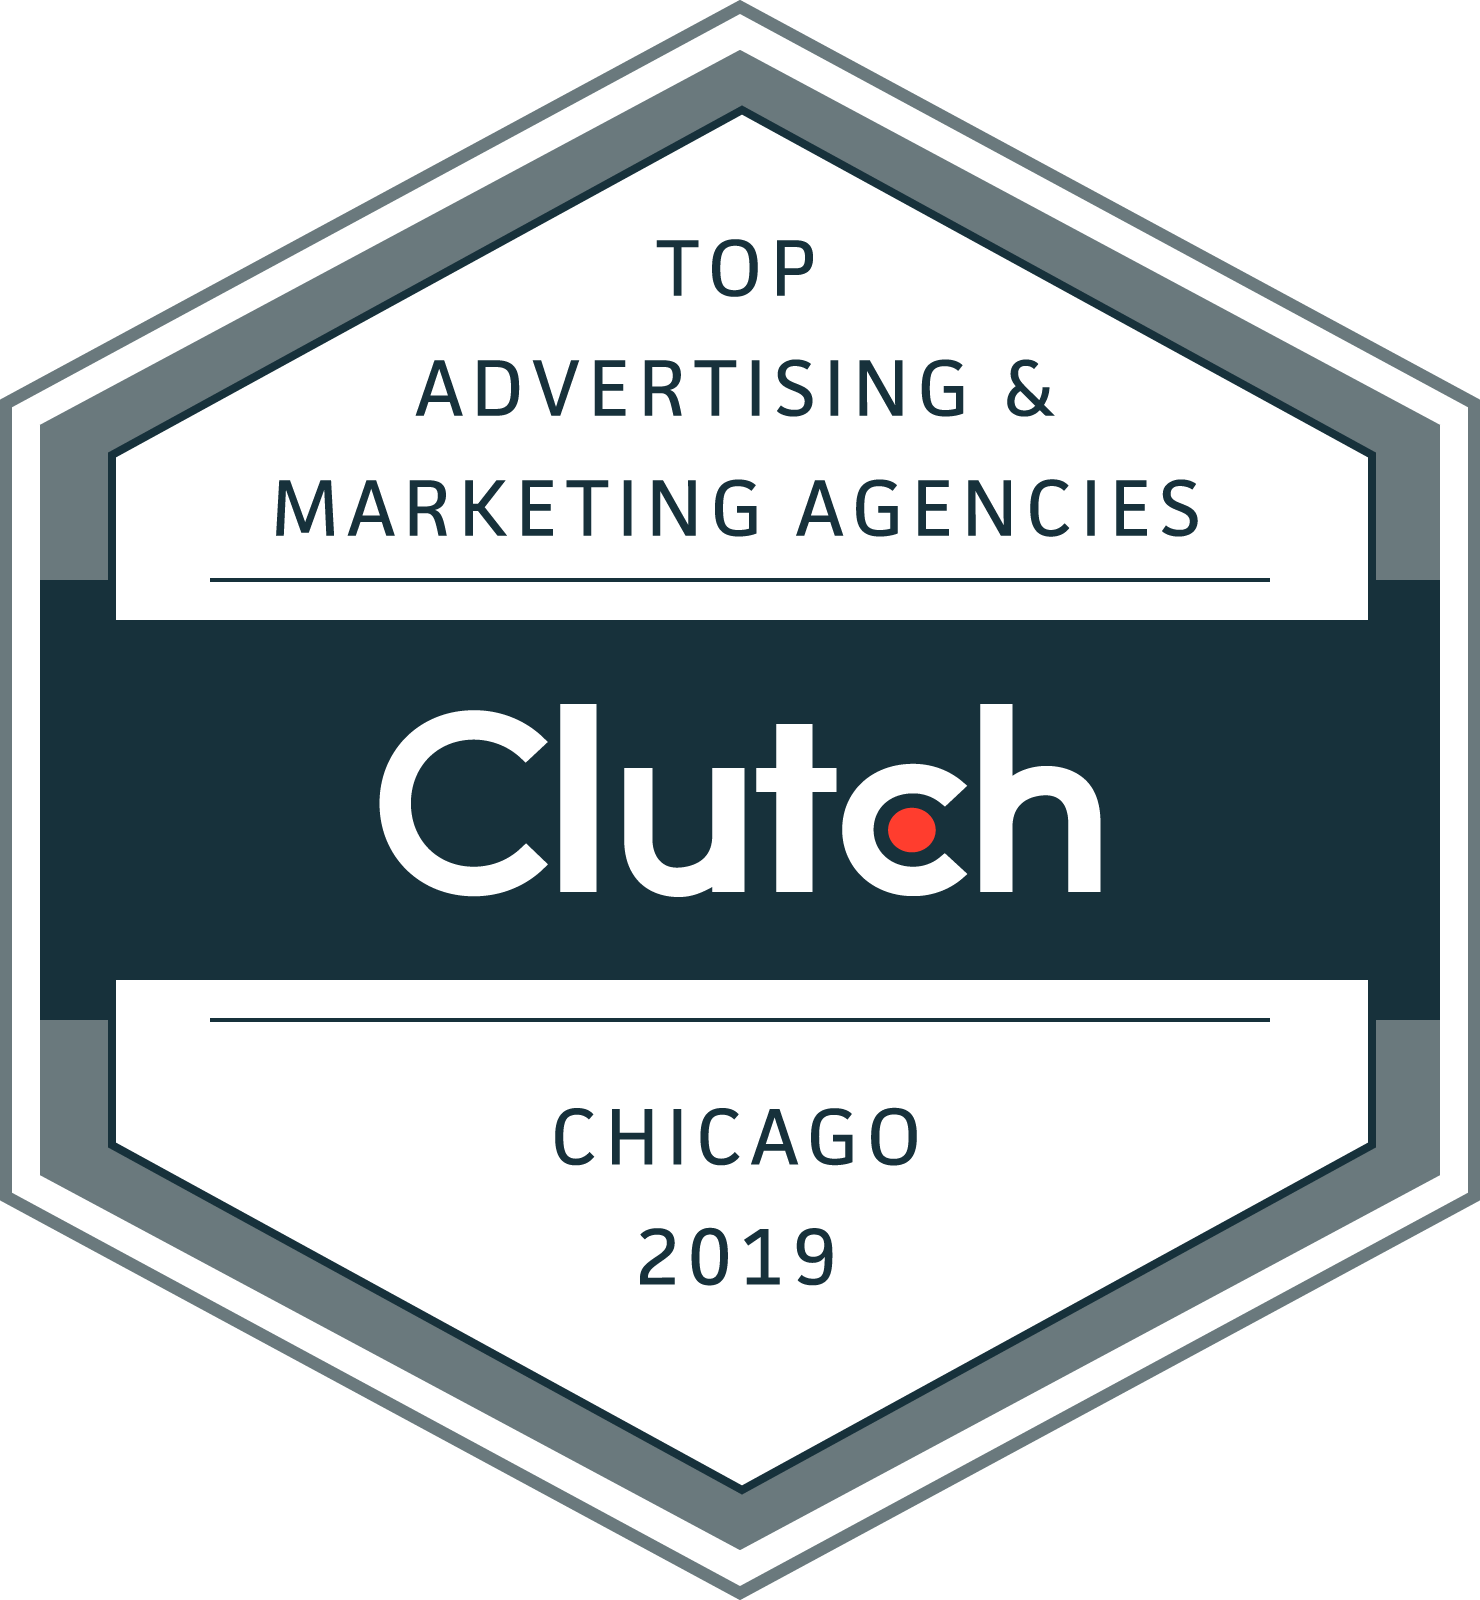 , V2M2 Group Recognized as a Top B2B Company in Chicago on Clutch!, V2M2 Group, Inc., V2M2 Group, Inc.